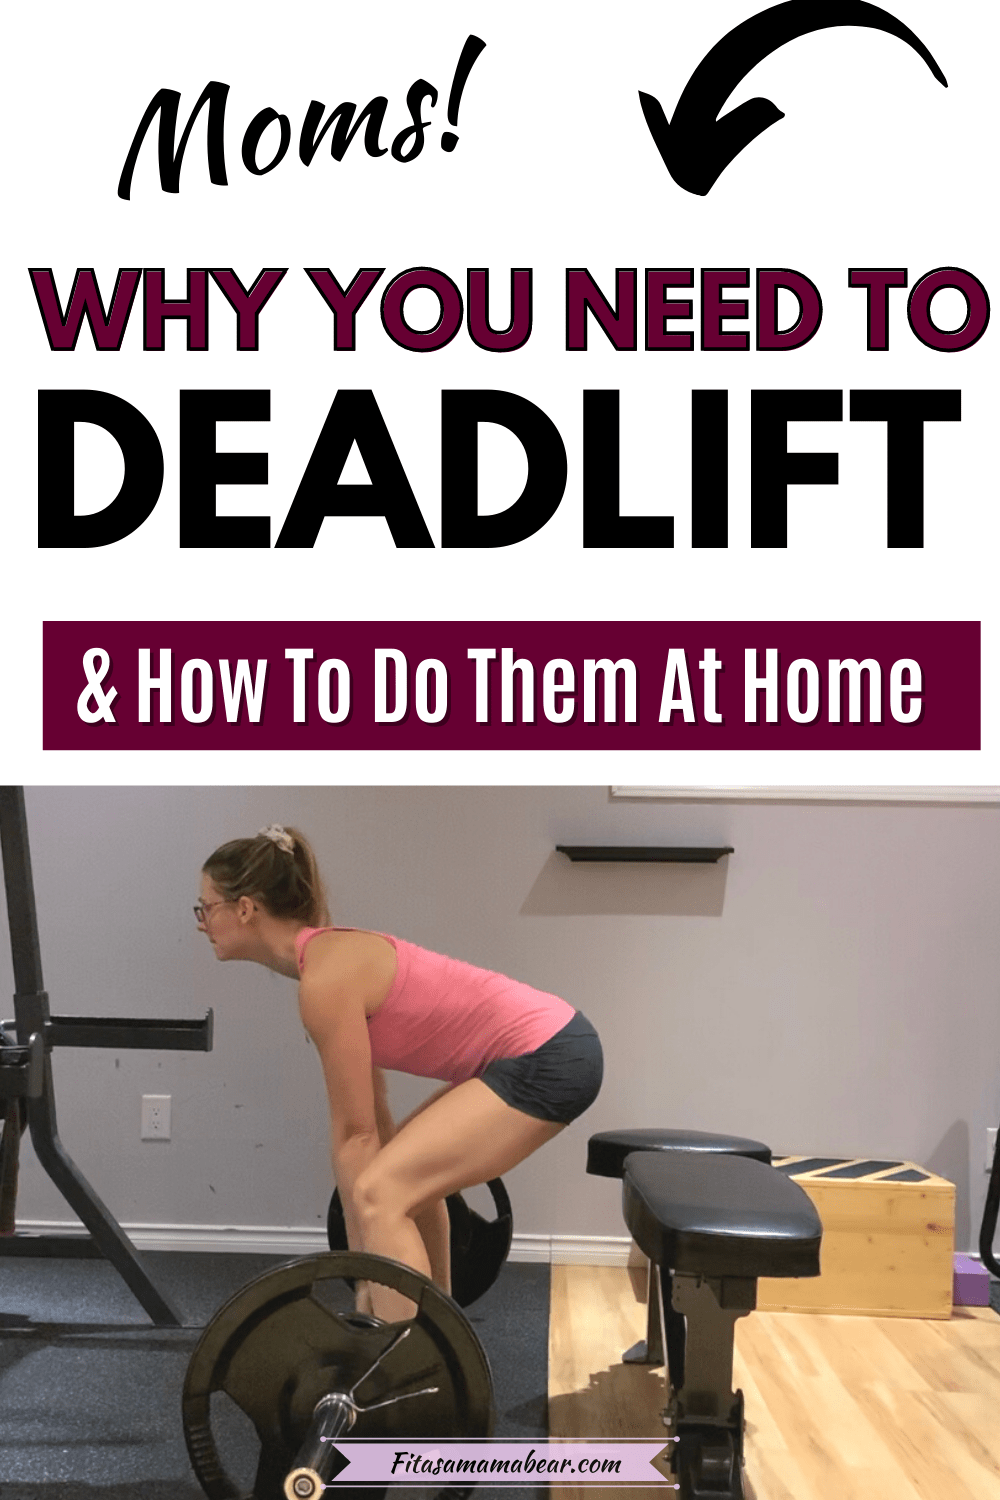 Featured image with text: woman in pink shirt and shorts in the gym with text about deadlifts